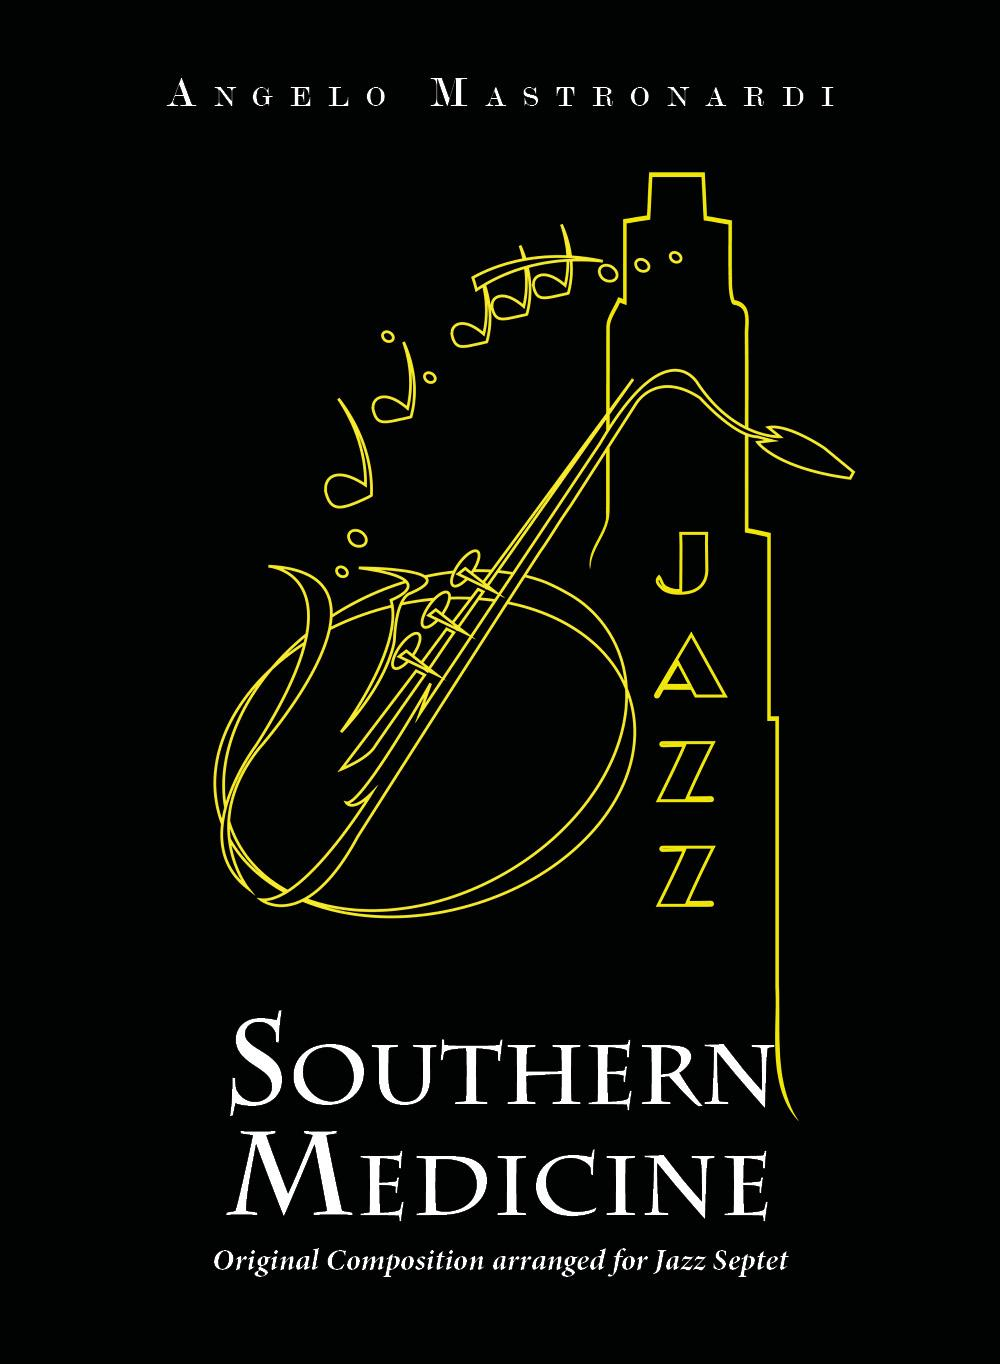 Southern Medicine - Original Composition arranged for Jazz Septet